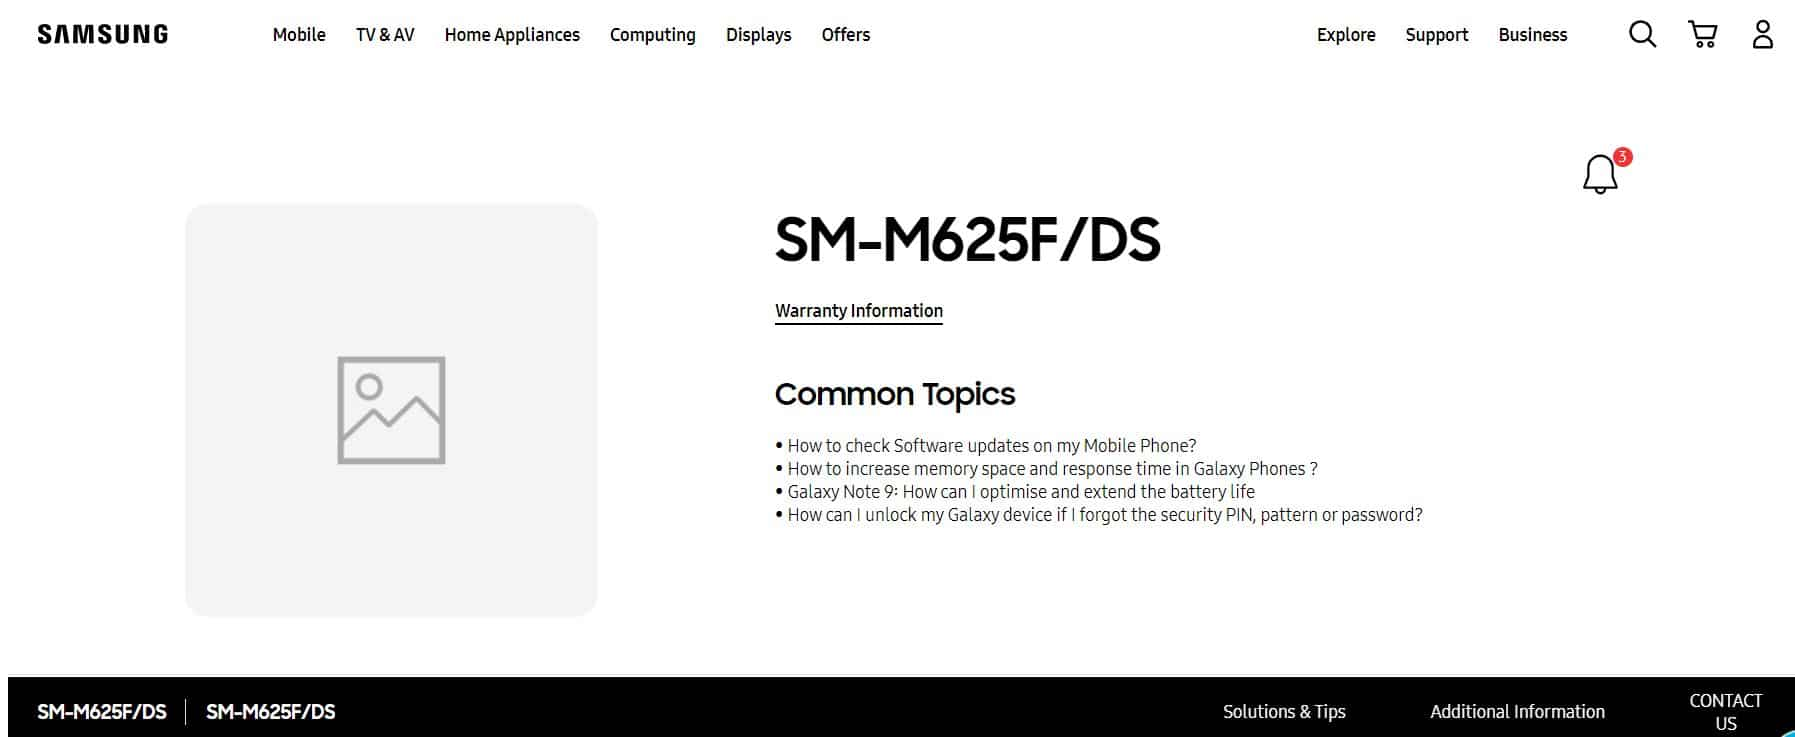 SM-M625F/DS support page